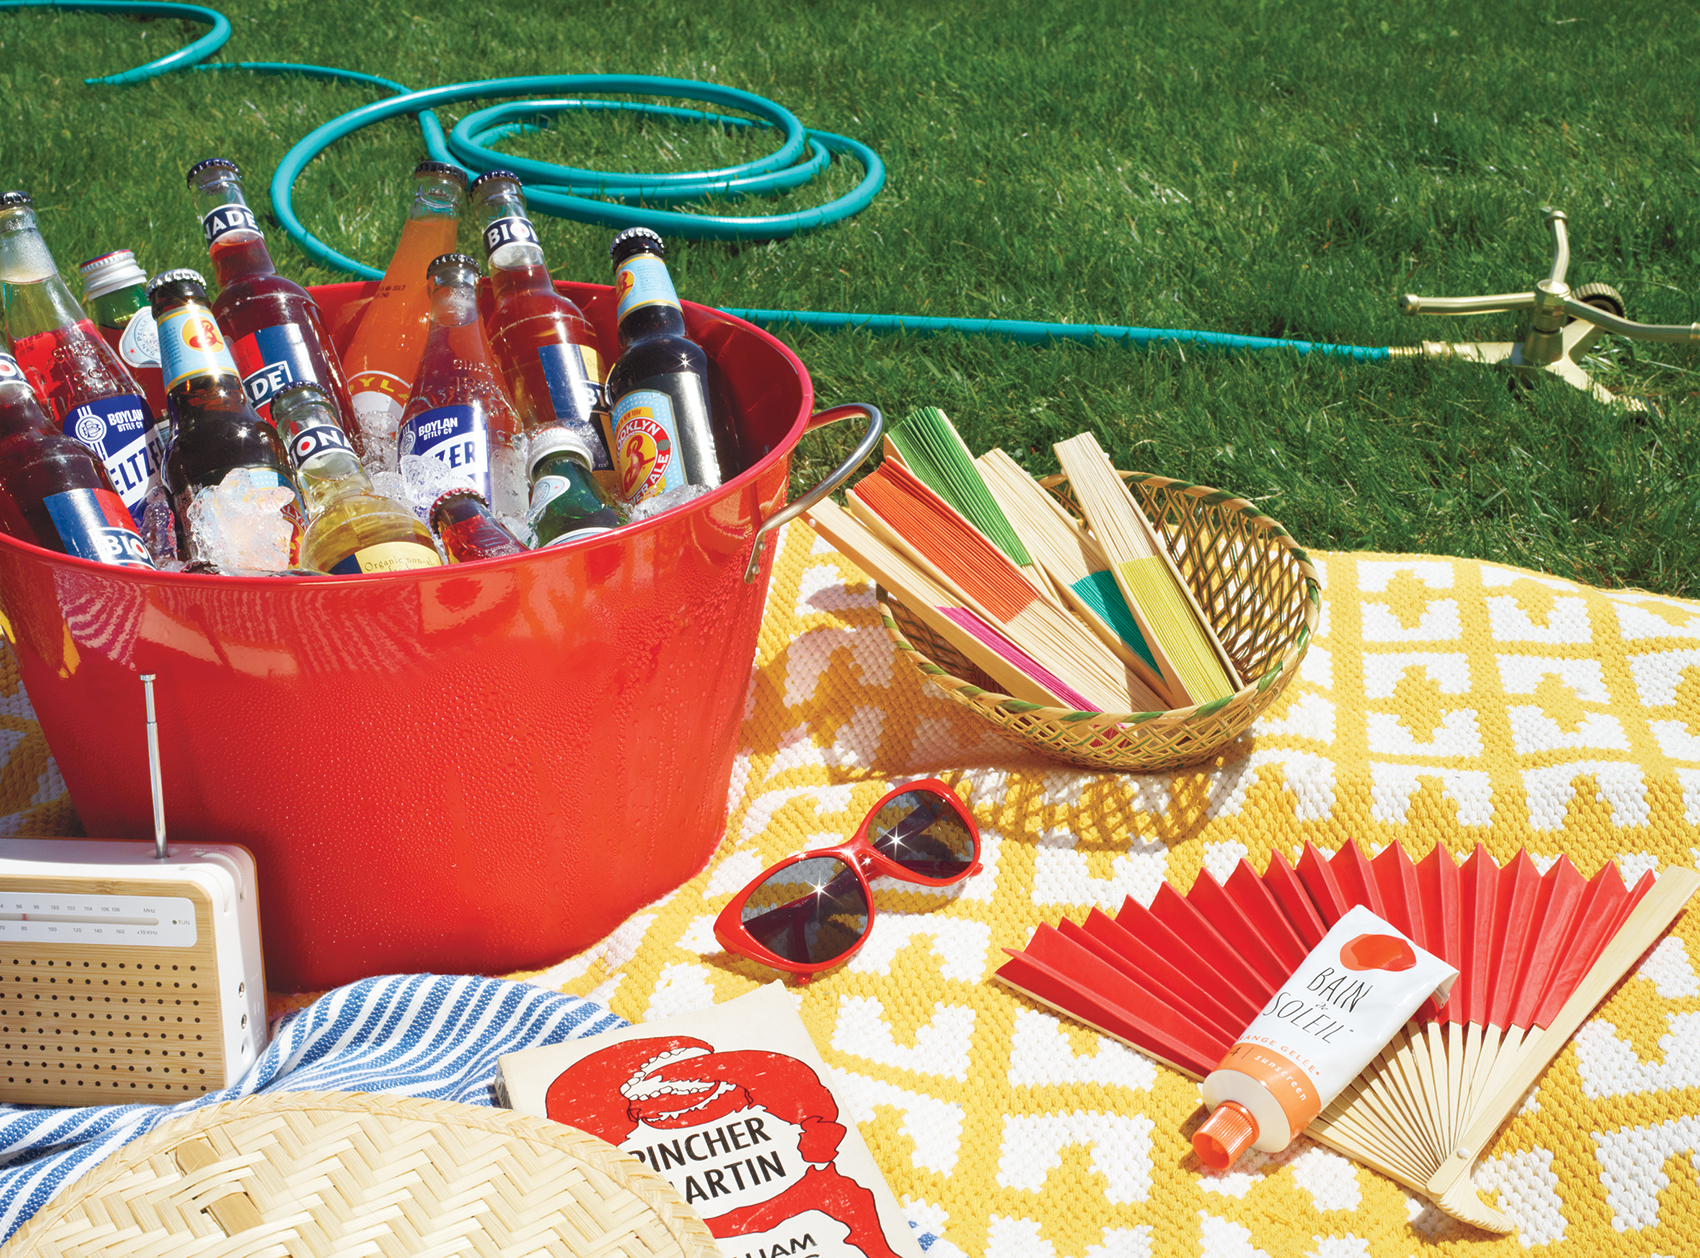 Bottled drinks in red bin at a picnic